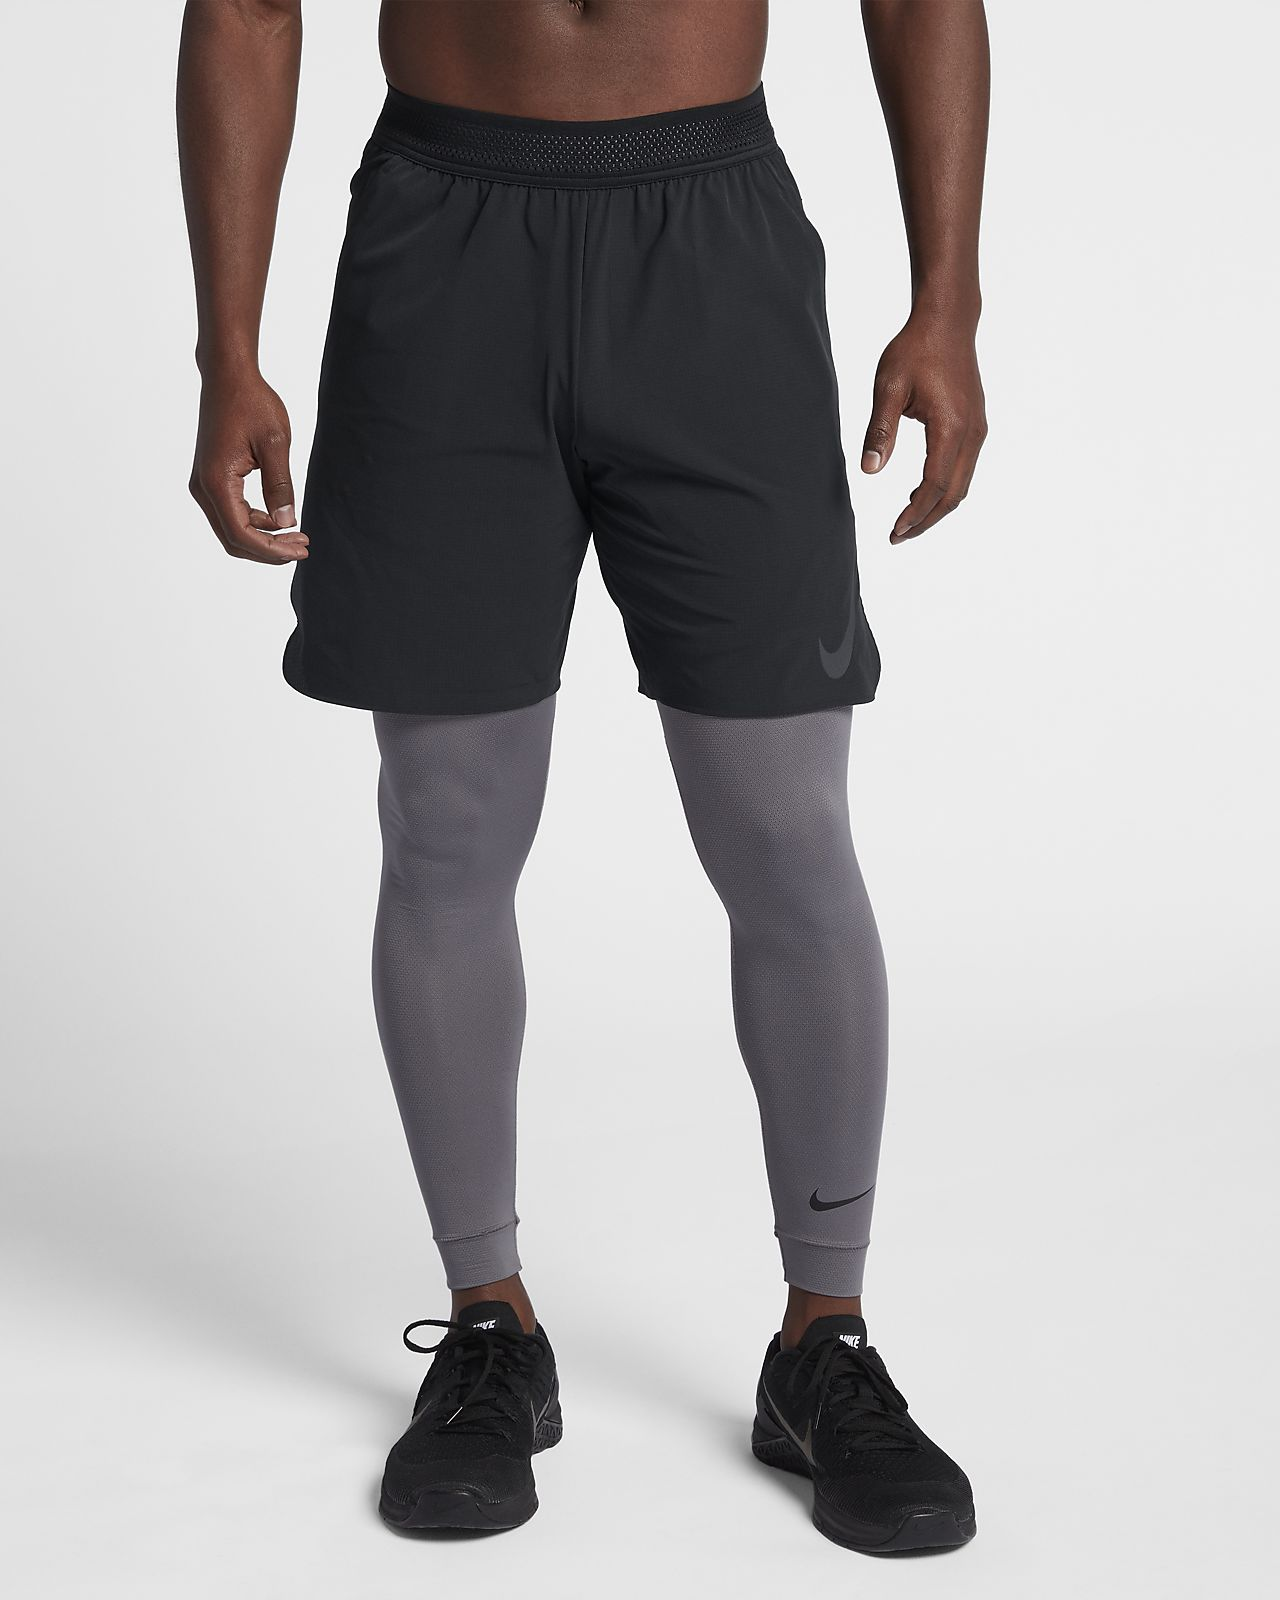 Nike Flex Repel Men's Training Shorts